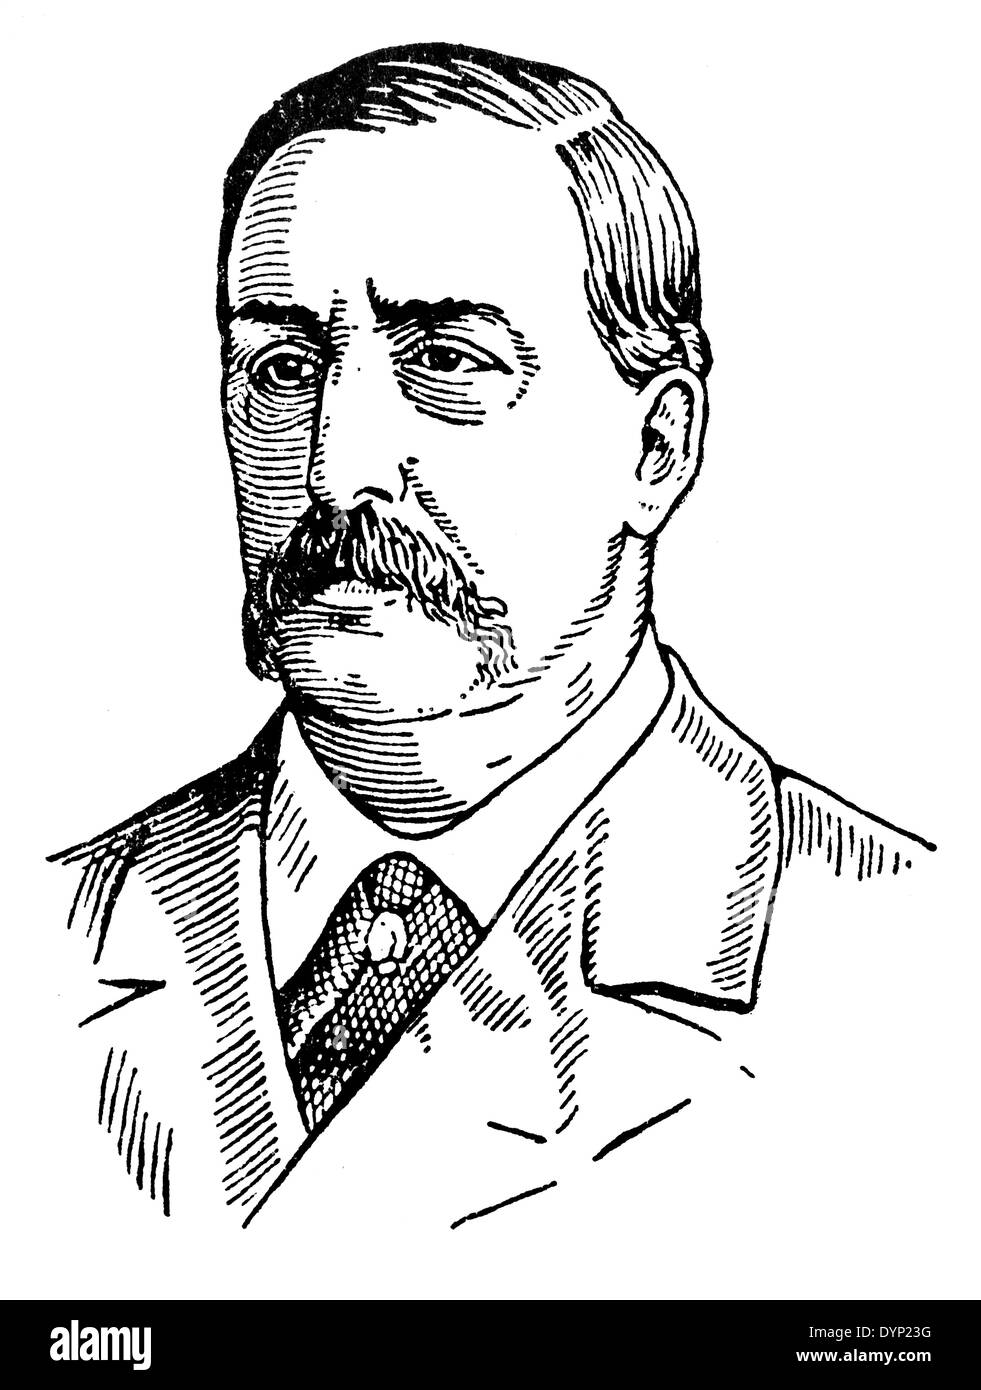 Alexander Borodin (1833-1887), Russian composer and chemist, illustration from Soviet encyclopedia, 1927 - Stock Image